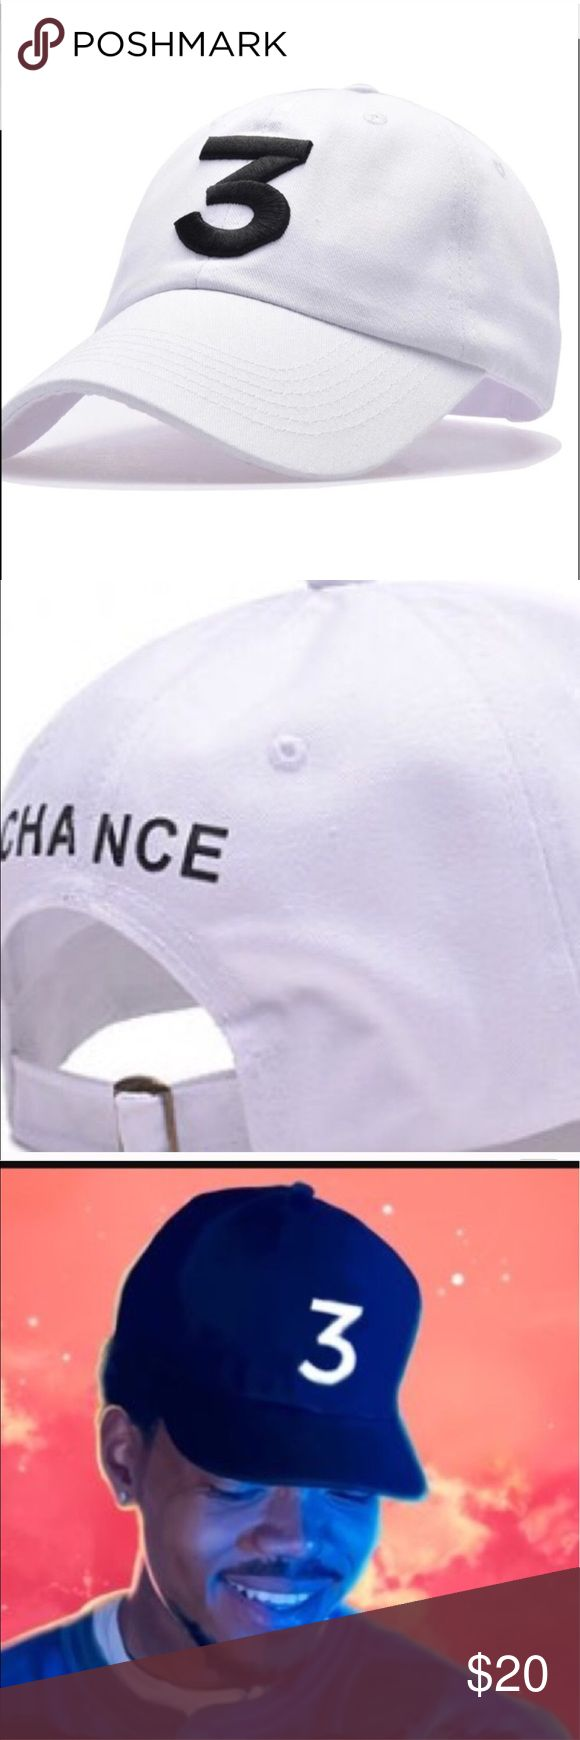 Chance the Rapper White 3 Hat Chance the Rapper White 3 Hat Accessories Hats